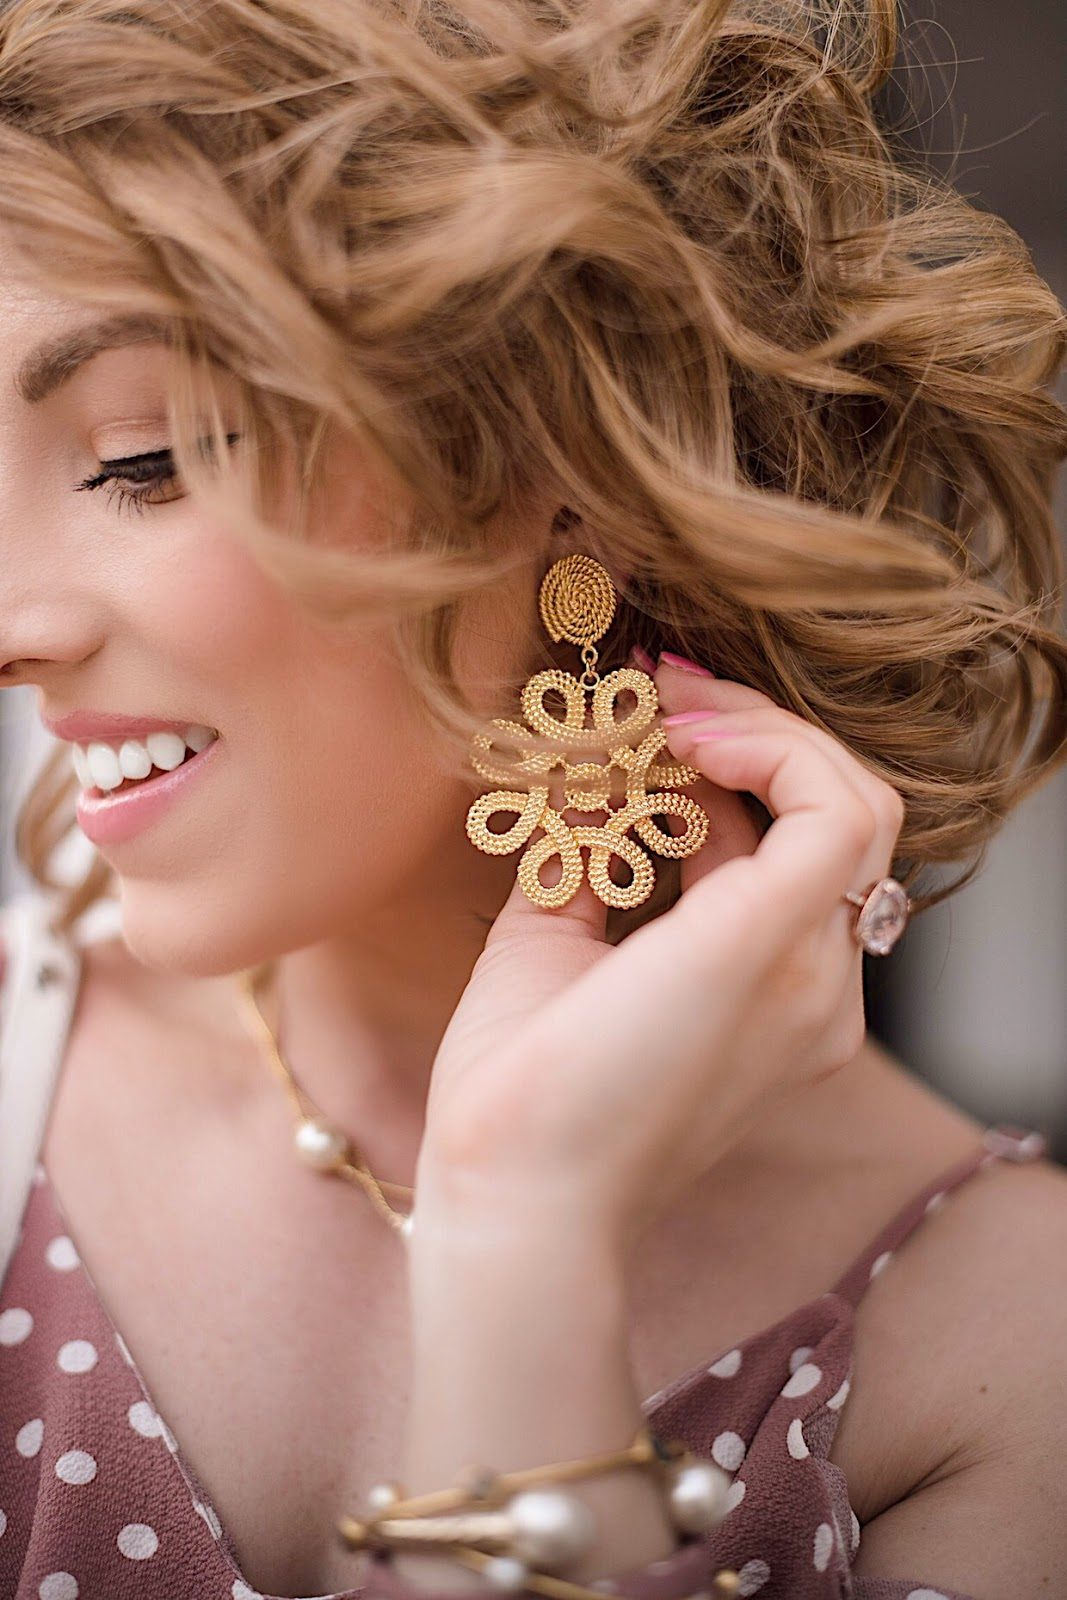 Lisi Lerch Cameran Earrings - Click through to see more on Something Delightful Blog